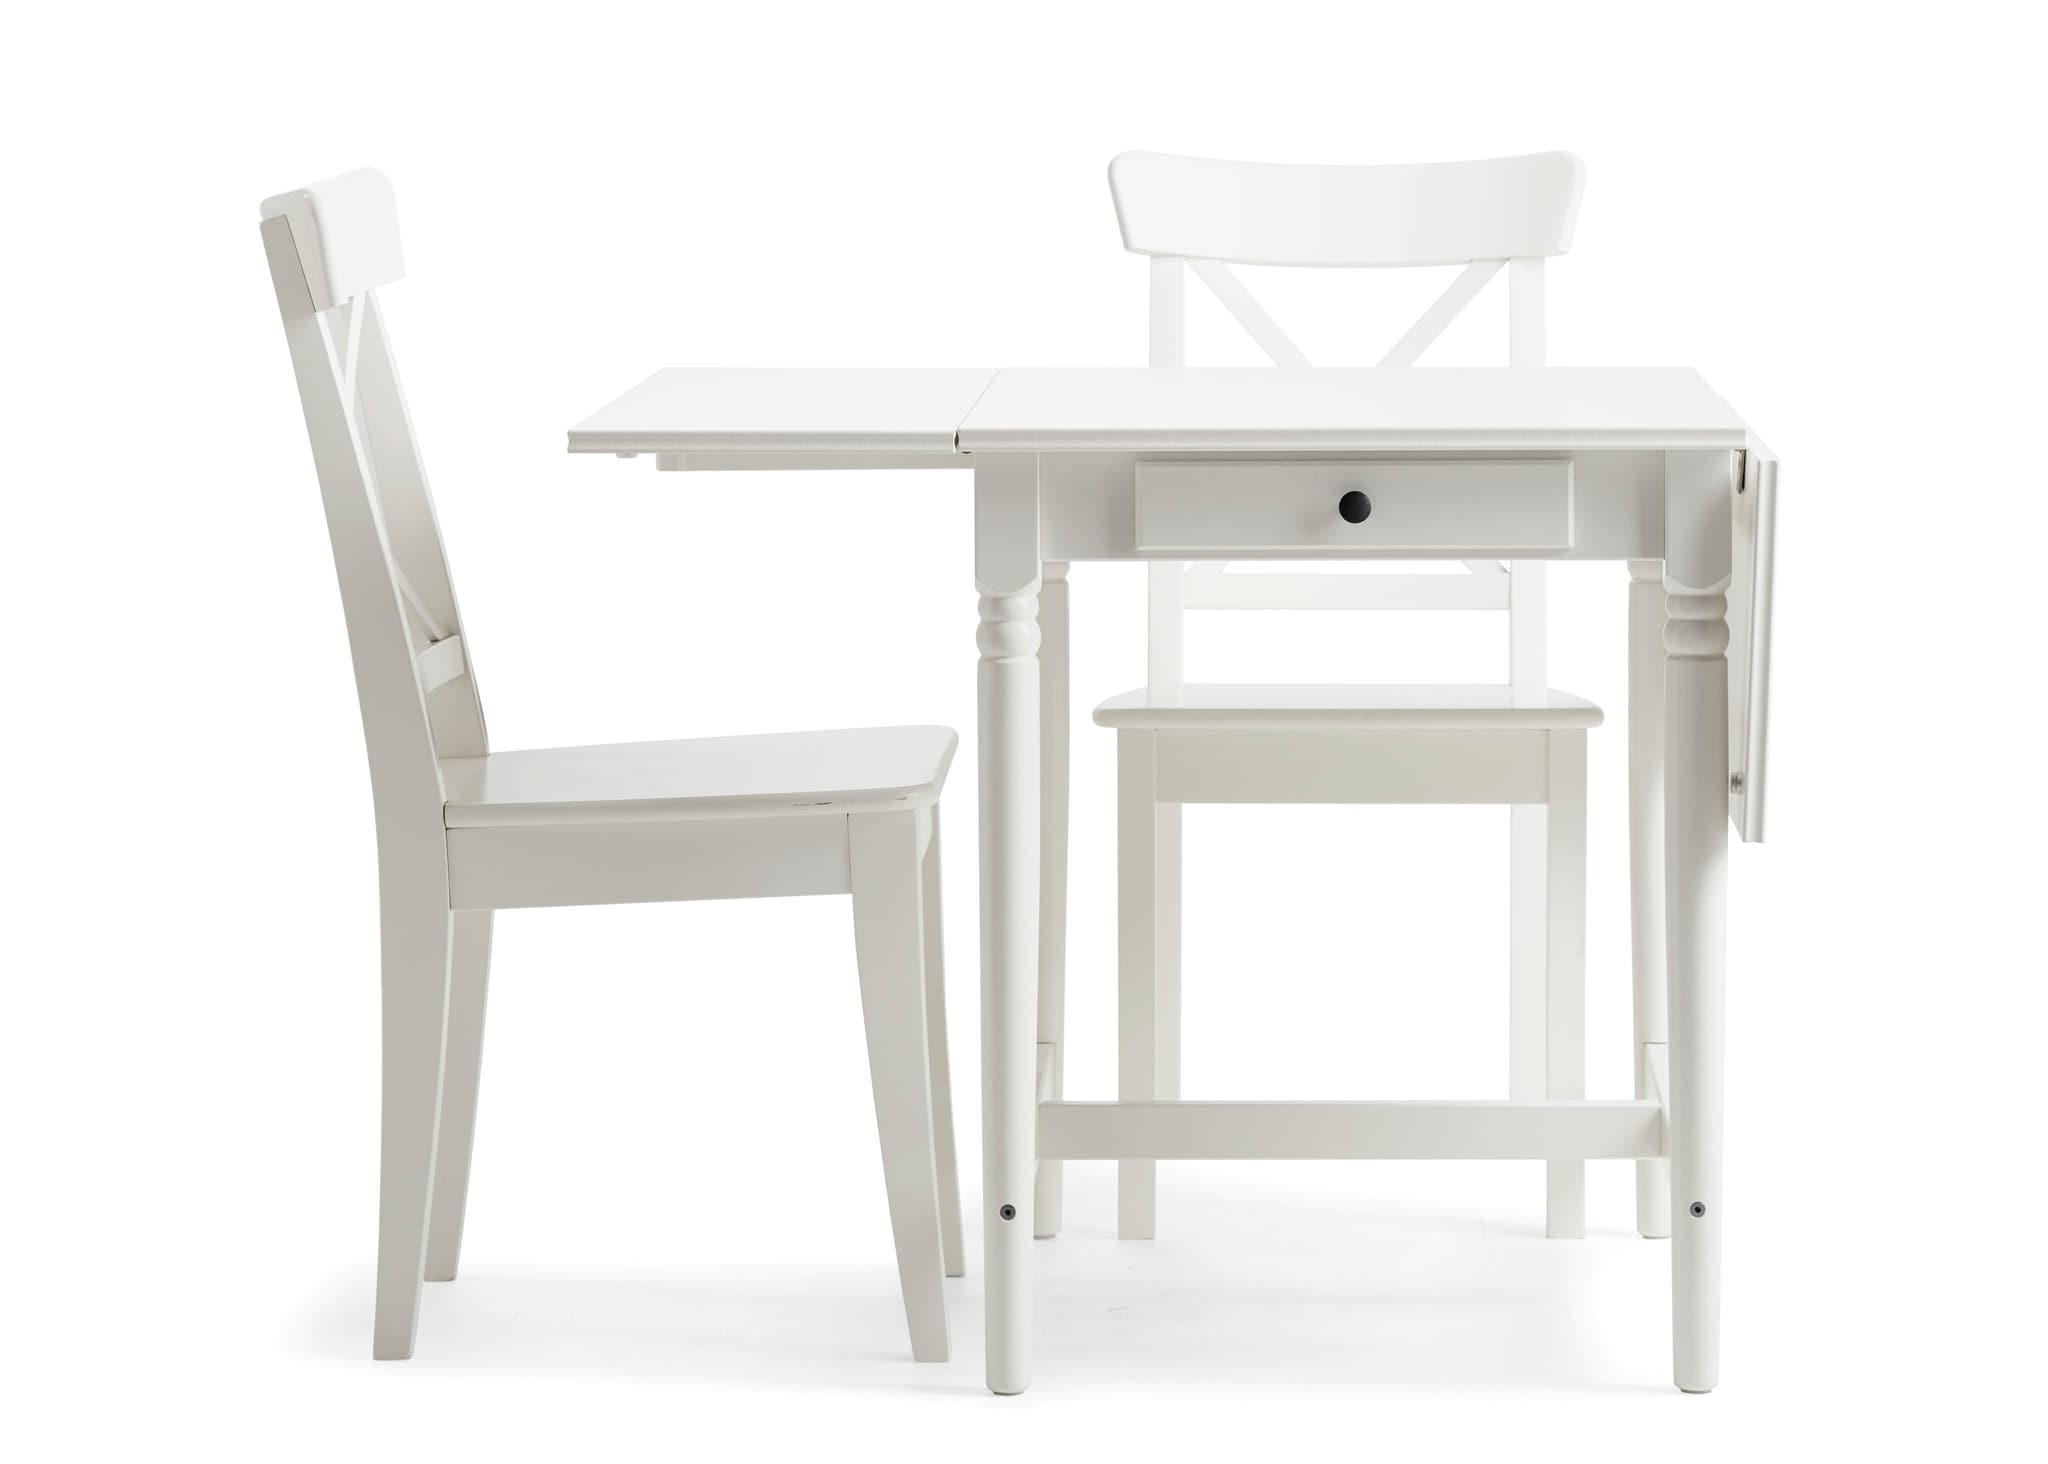 Ikea In Current Compact Dining Tables And Chairs (View 17 of 25)